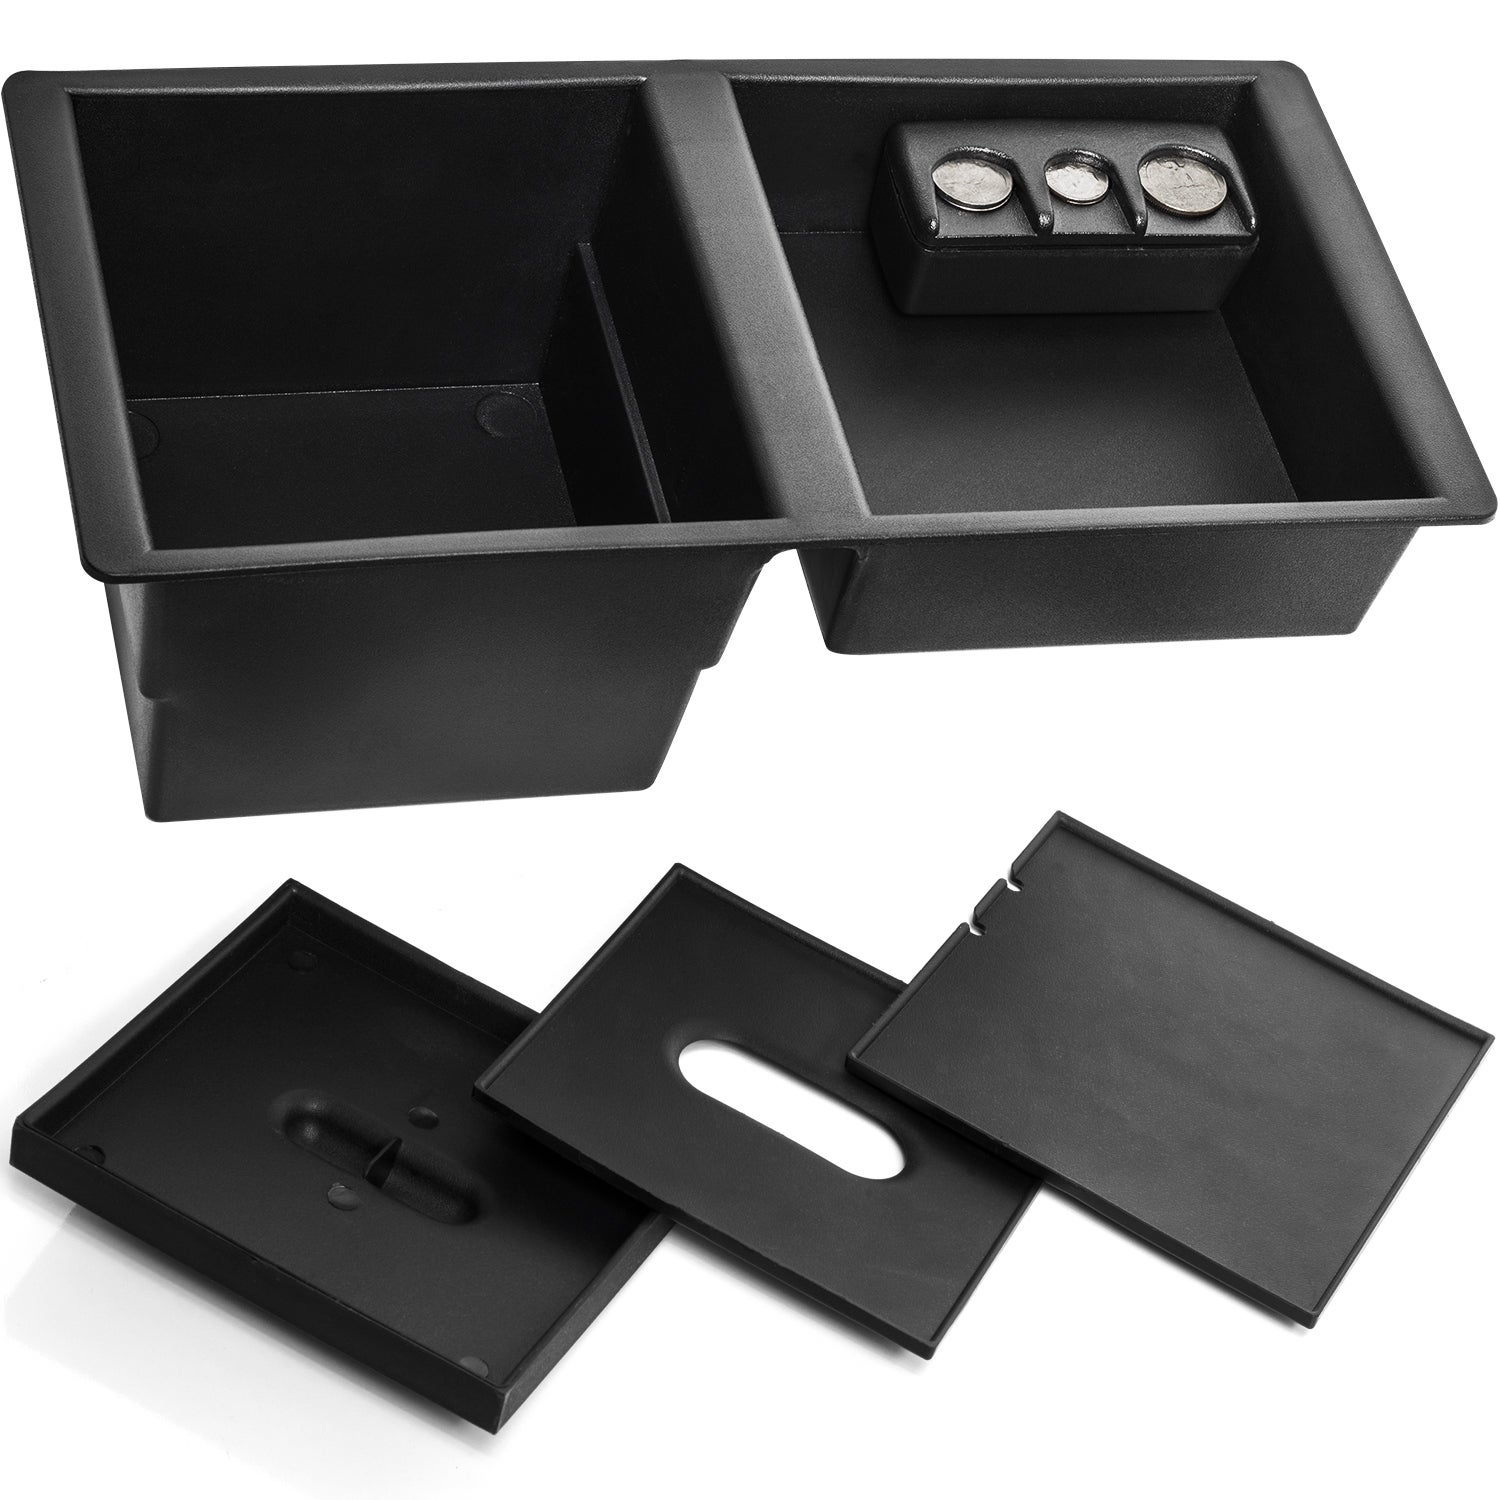 Oxgord Center Console Insert Tray for Select GM Vehicles ...